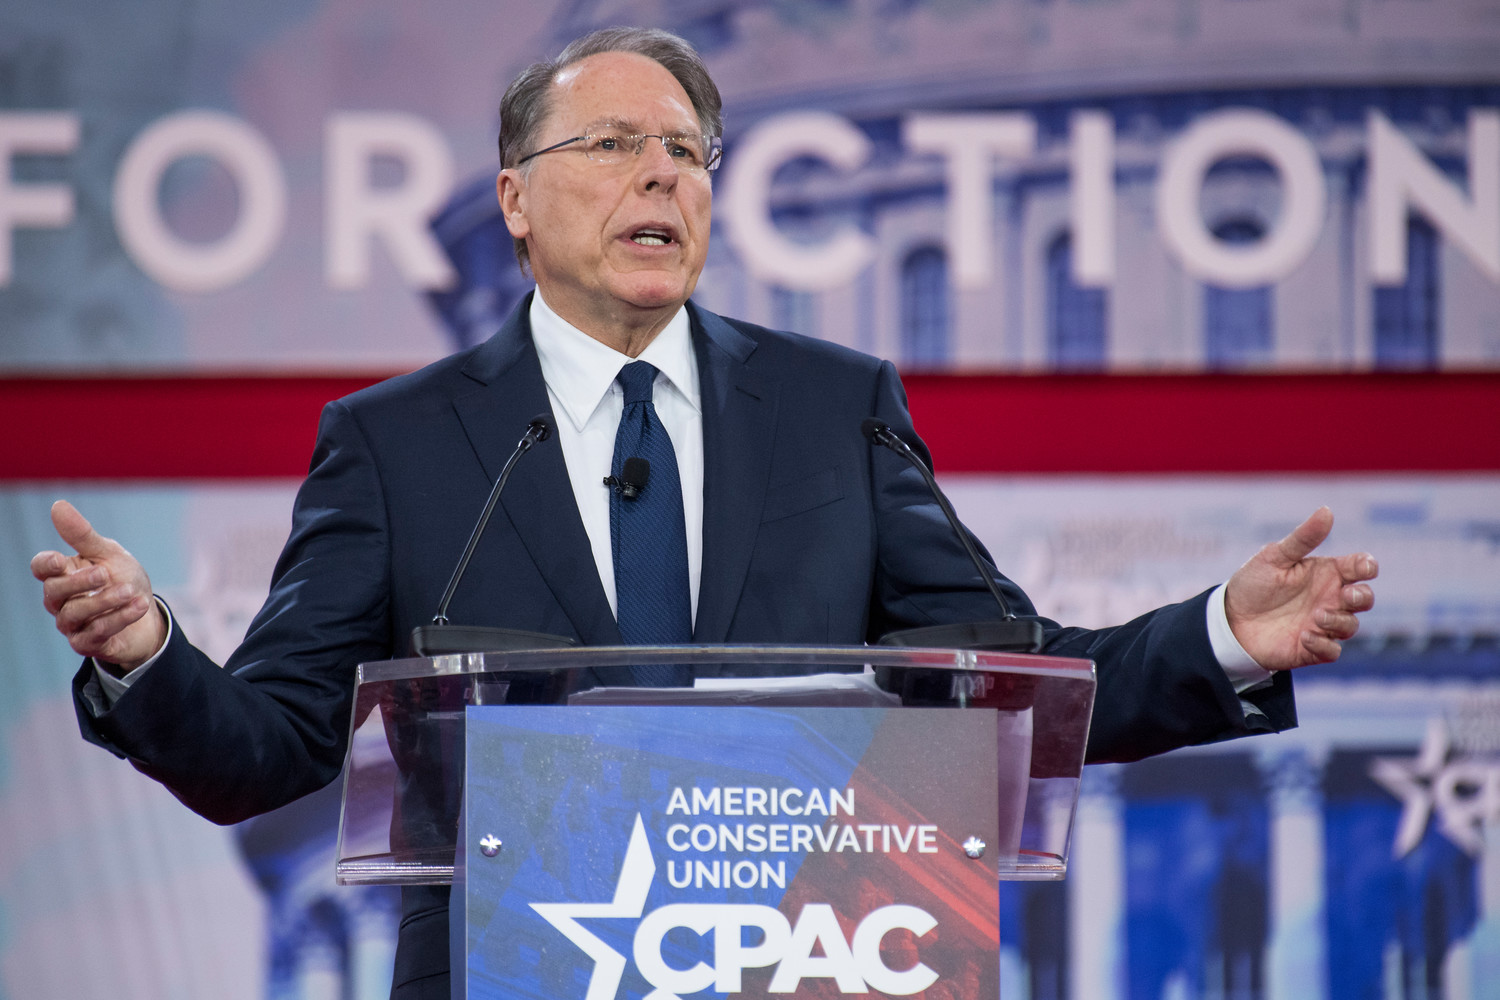 Wayne LaPierre, CEO of the National Rifle Association, addresses the Conservative Political Action Conference in Oxon Hill, Md., on FebFeb. 22.